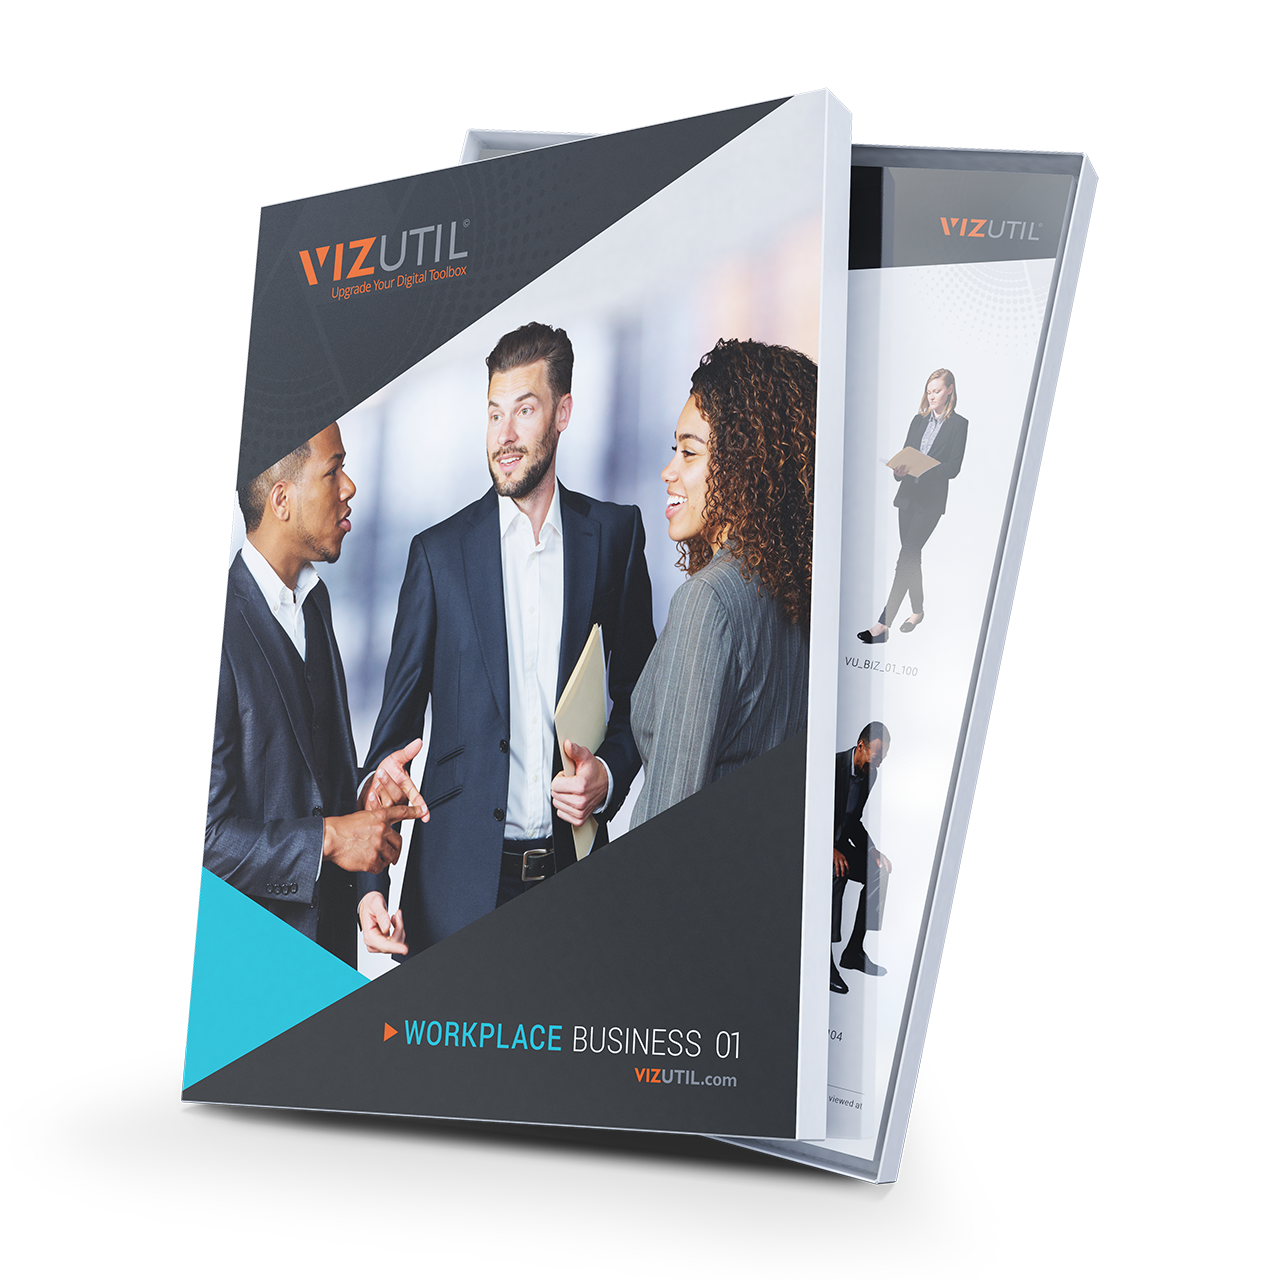 VIZUTIL Workplace: Business 01 Catalog